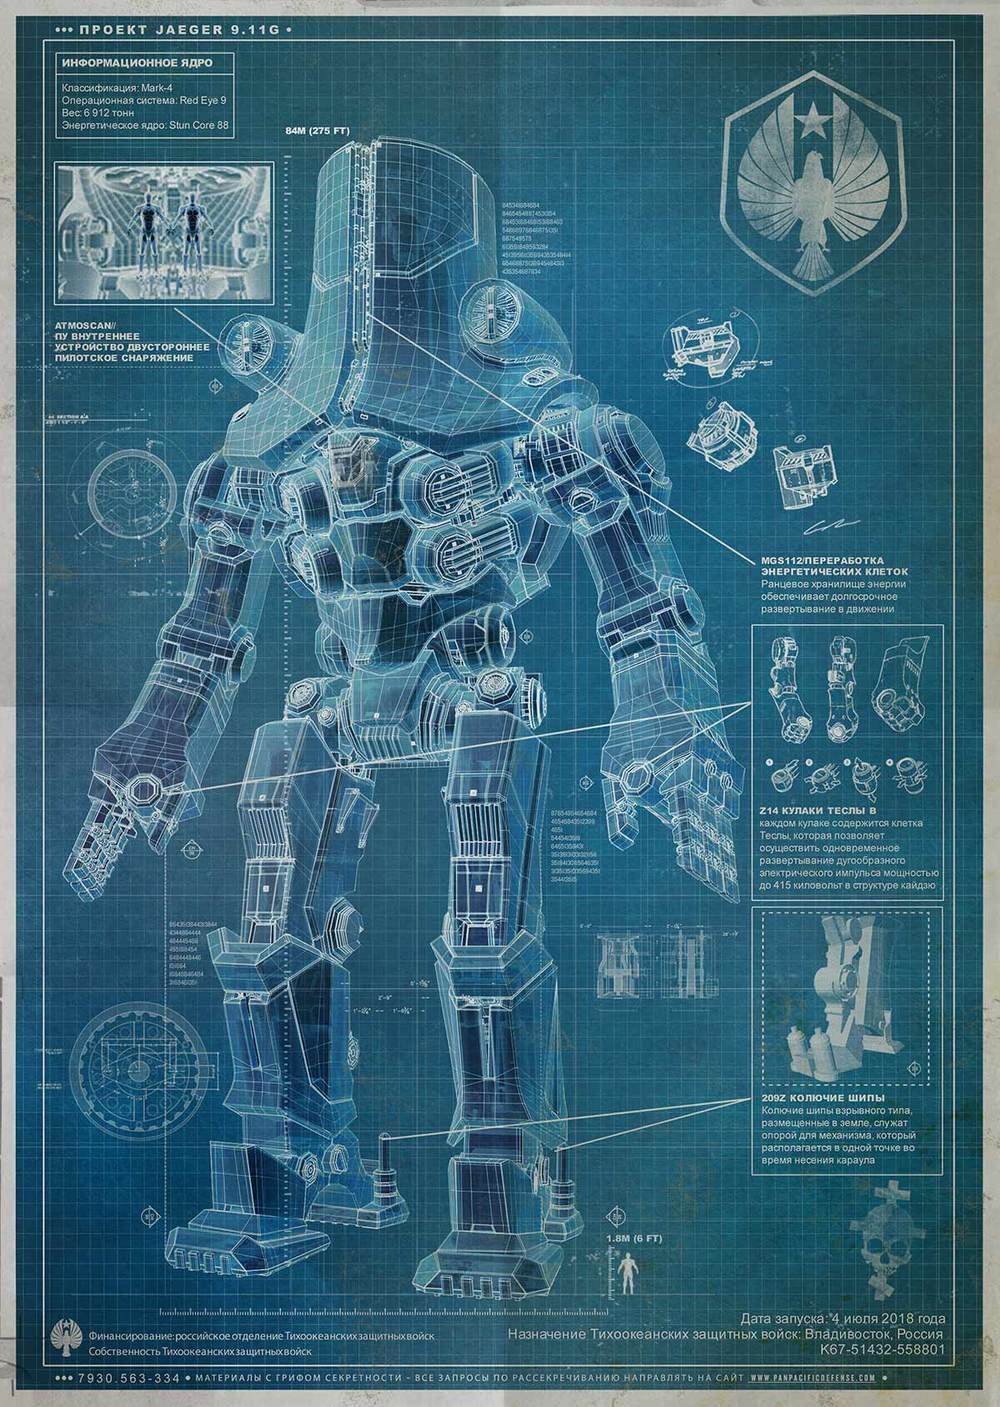 Pacific rim new blueprints for another 3 robots geektyrant three new blueprints have been released for the giant robots that well see in guillermo del toros pacific rim the picture above shows off a russian malvernweather Images